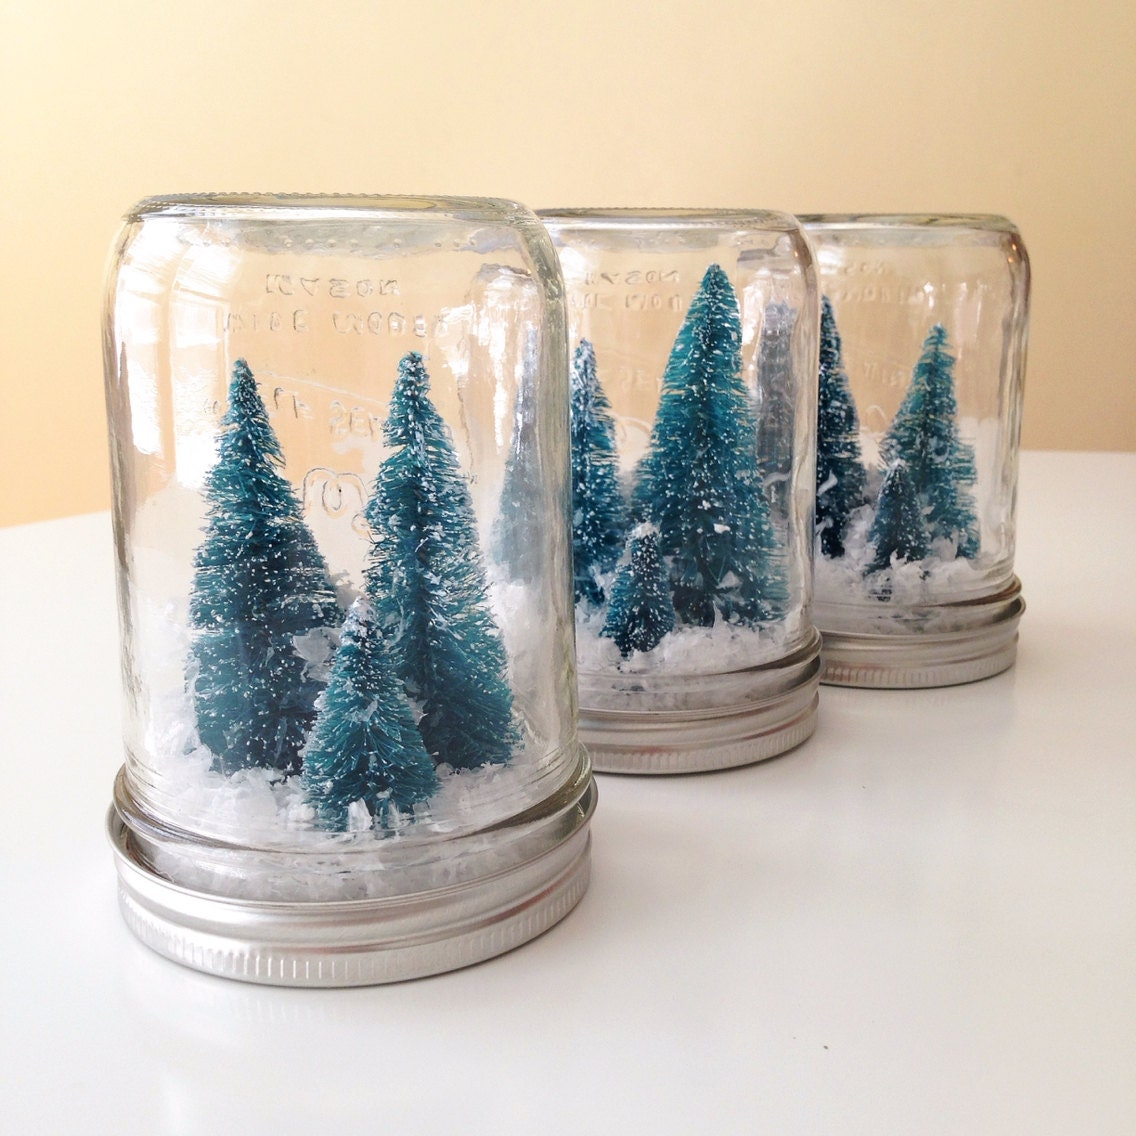 Mason Jar Christmas Decorations: Winter Wonderland Mason Jar Christmas Decoration By AJarMpls